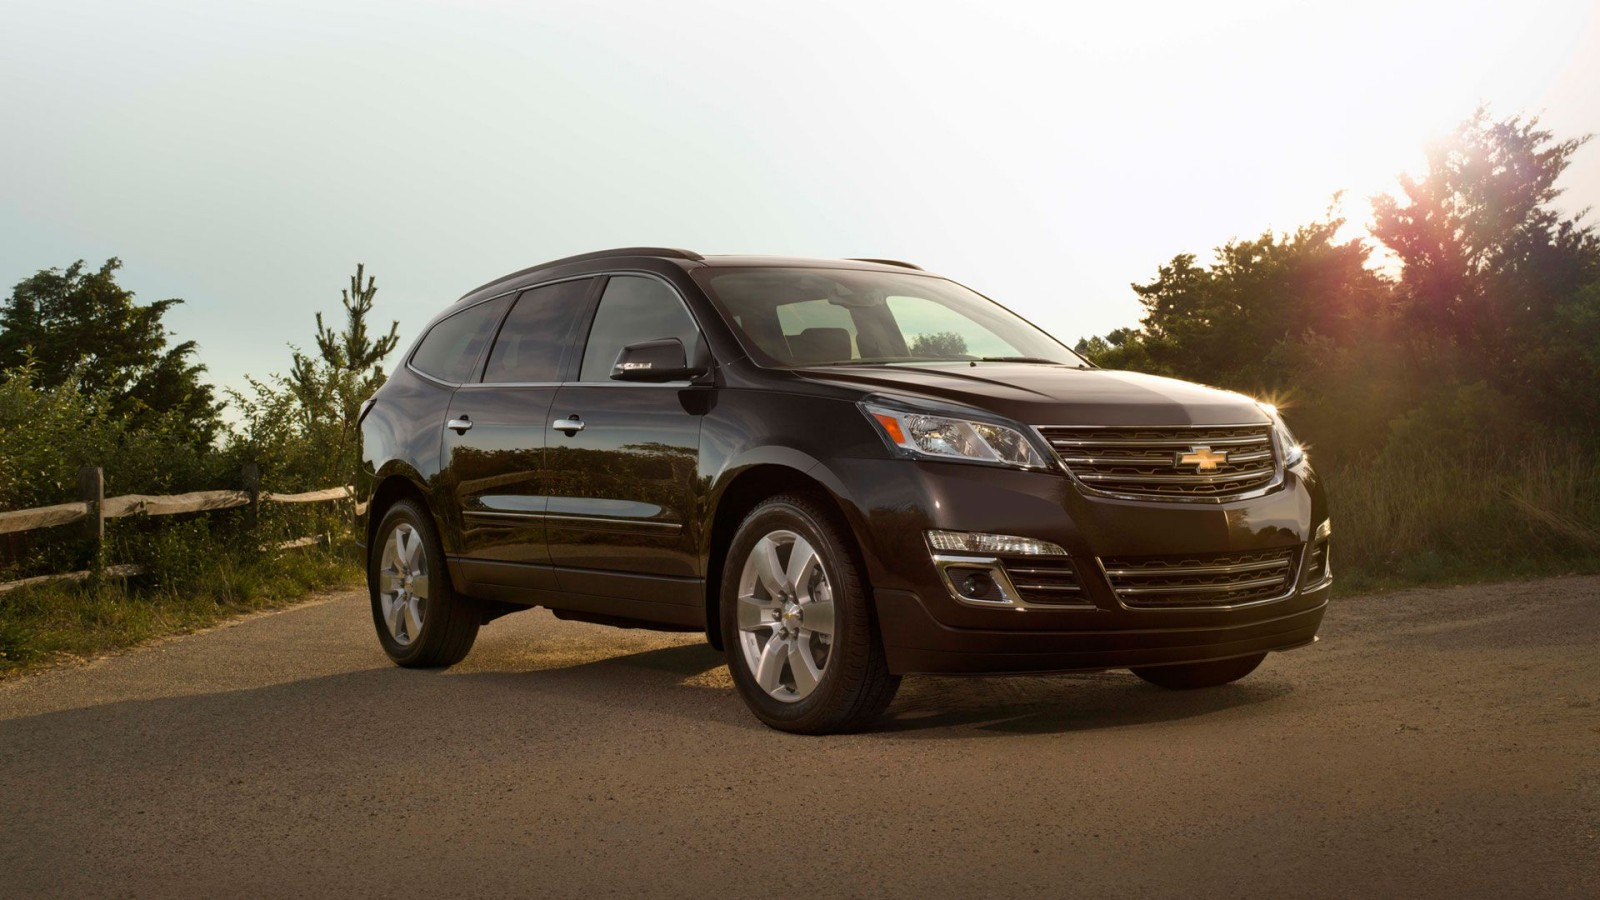 doug henry chevrolet ford tarboro 2015 chevrolet traverse. Black Bedroom Furniture Sets. Home Design Ideas